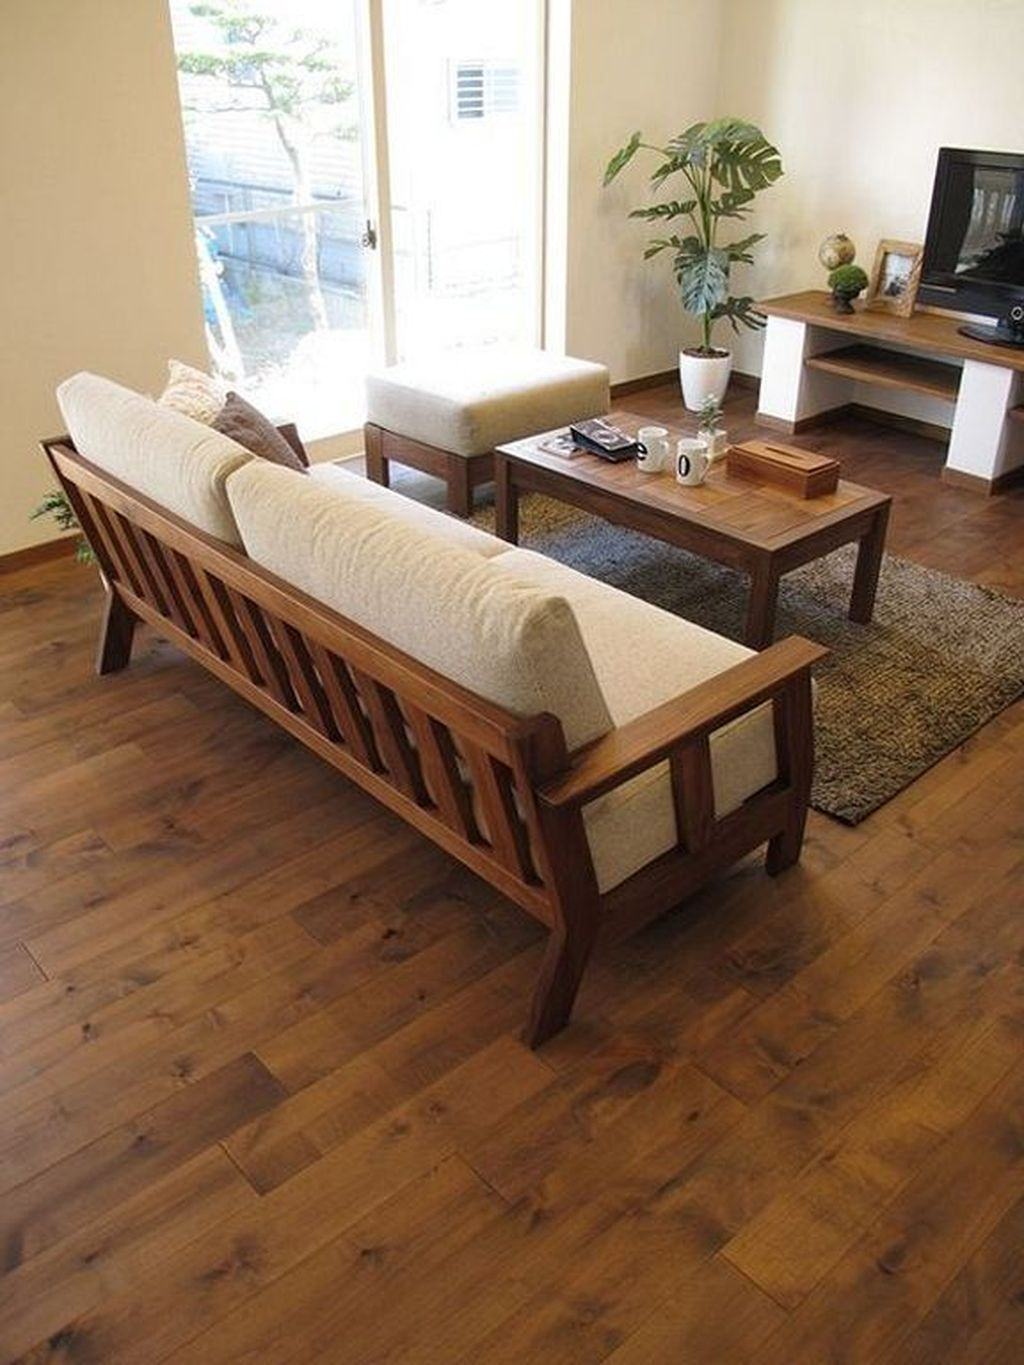 Best Wooden Furniture Design Ideas To Decorate Your Home 28